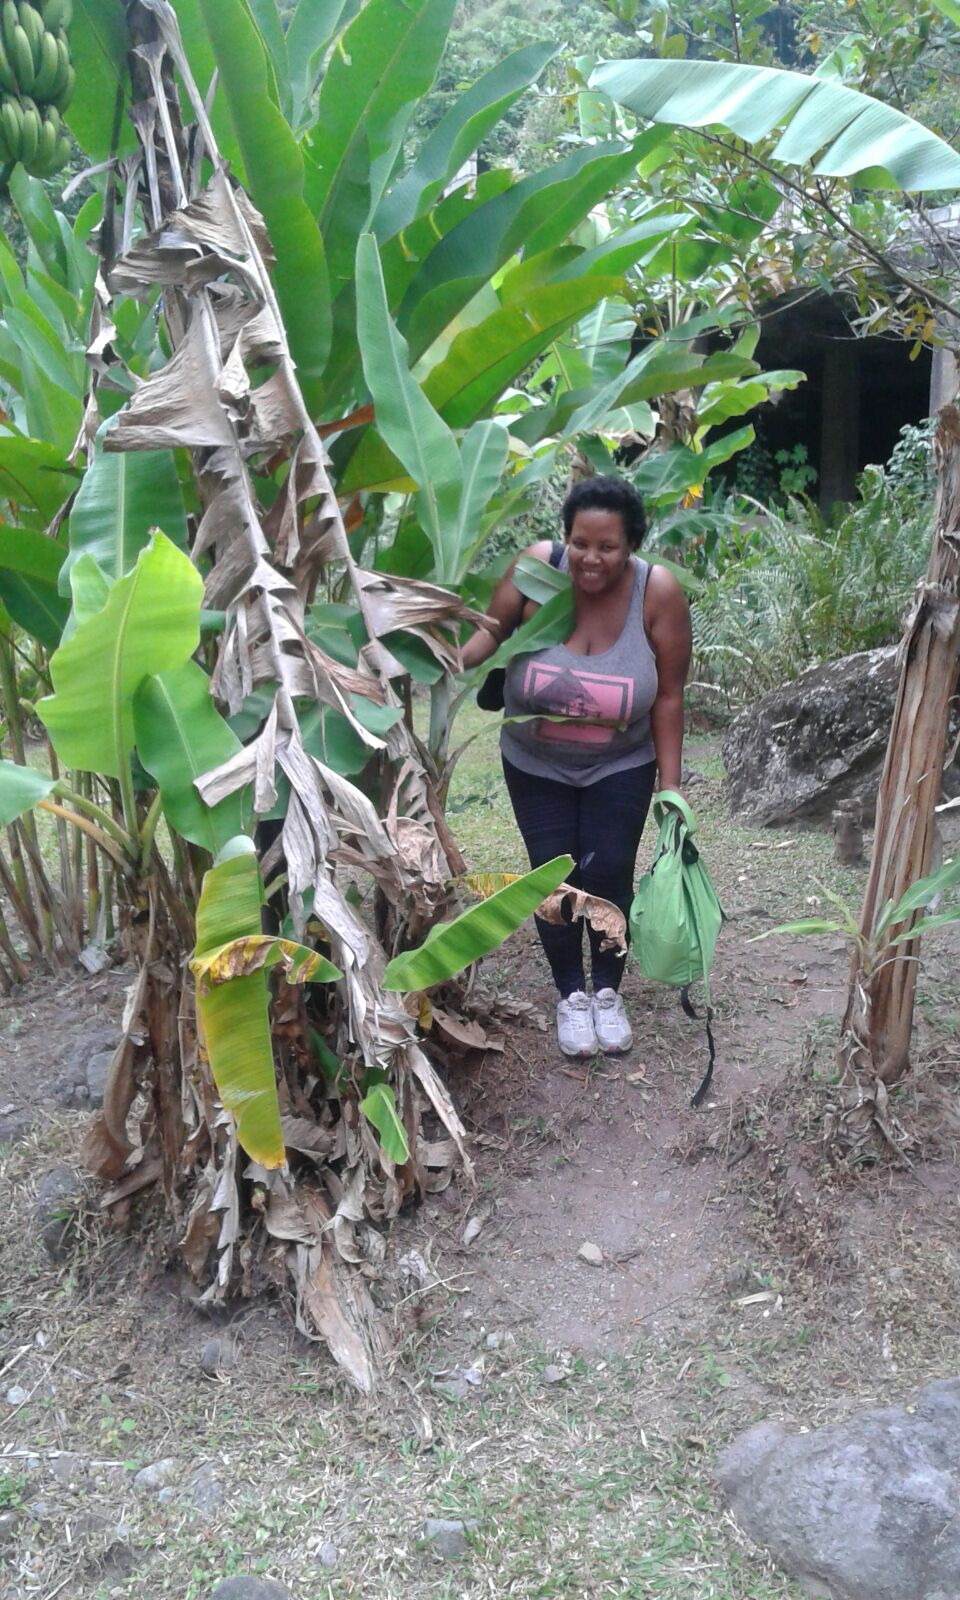 The Dryland Tourist behind a banana tree after hiking in Jamaica